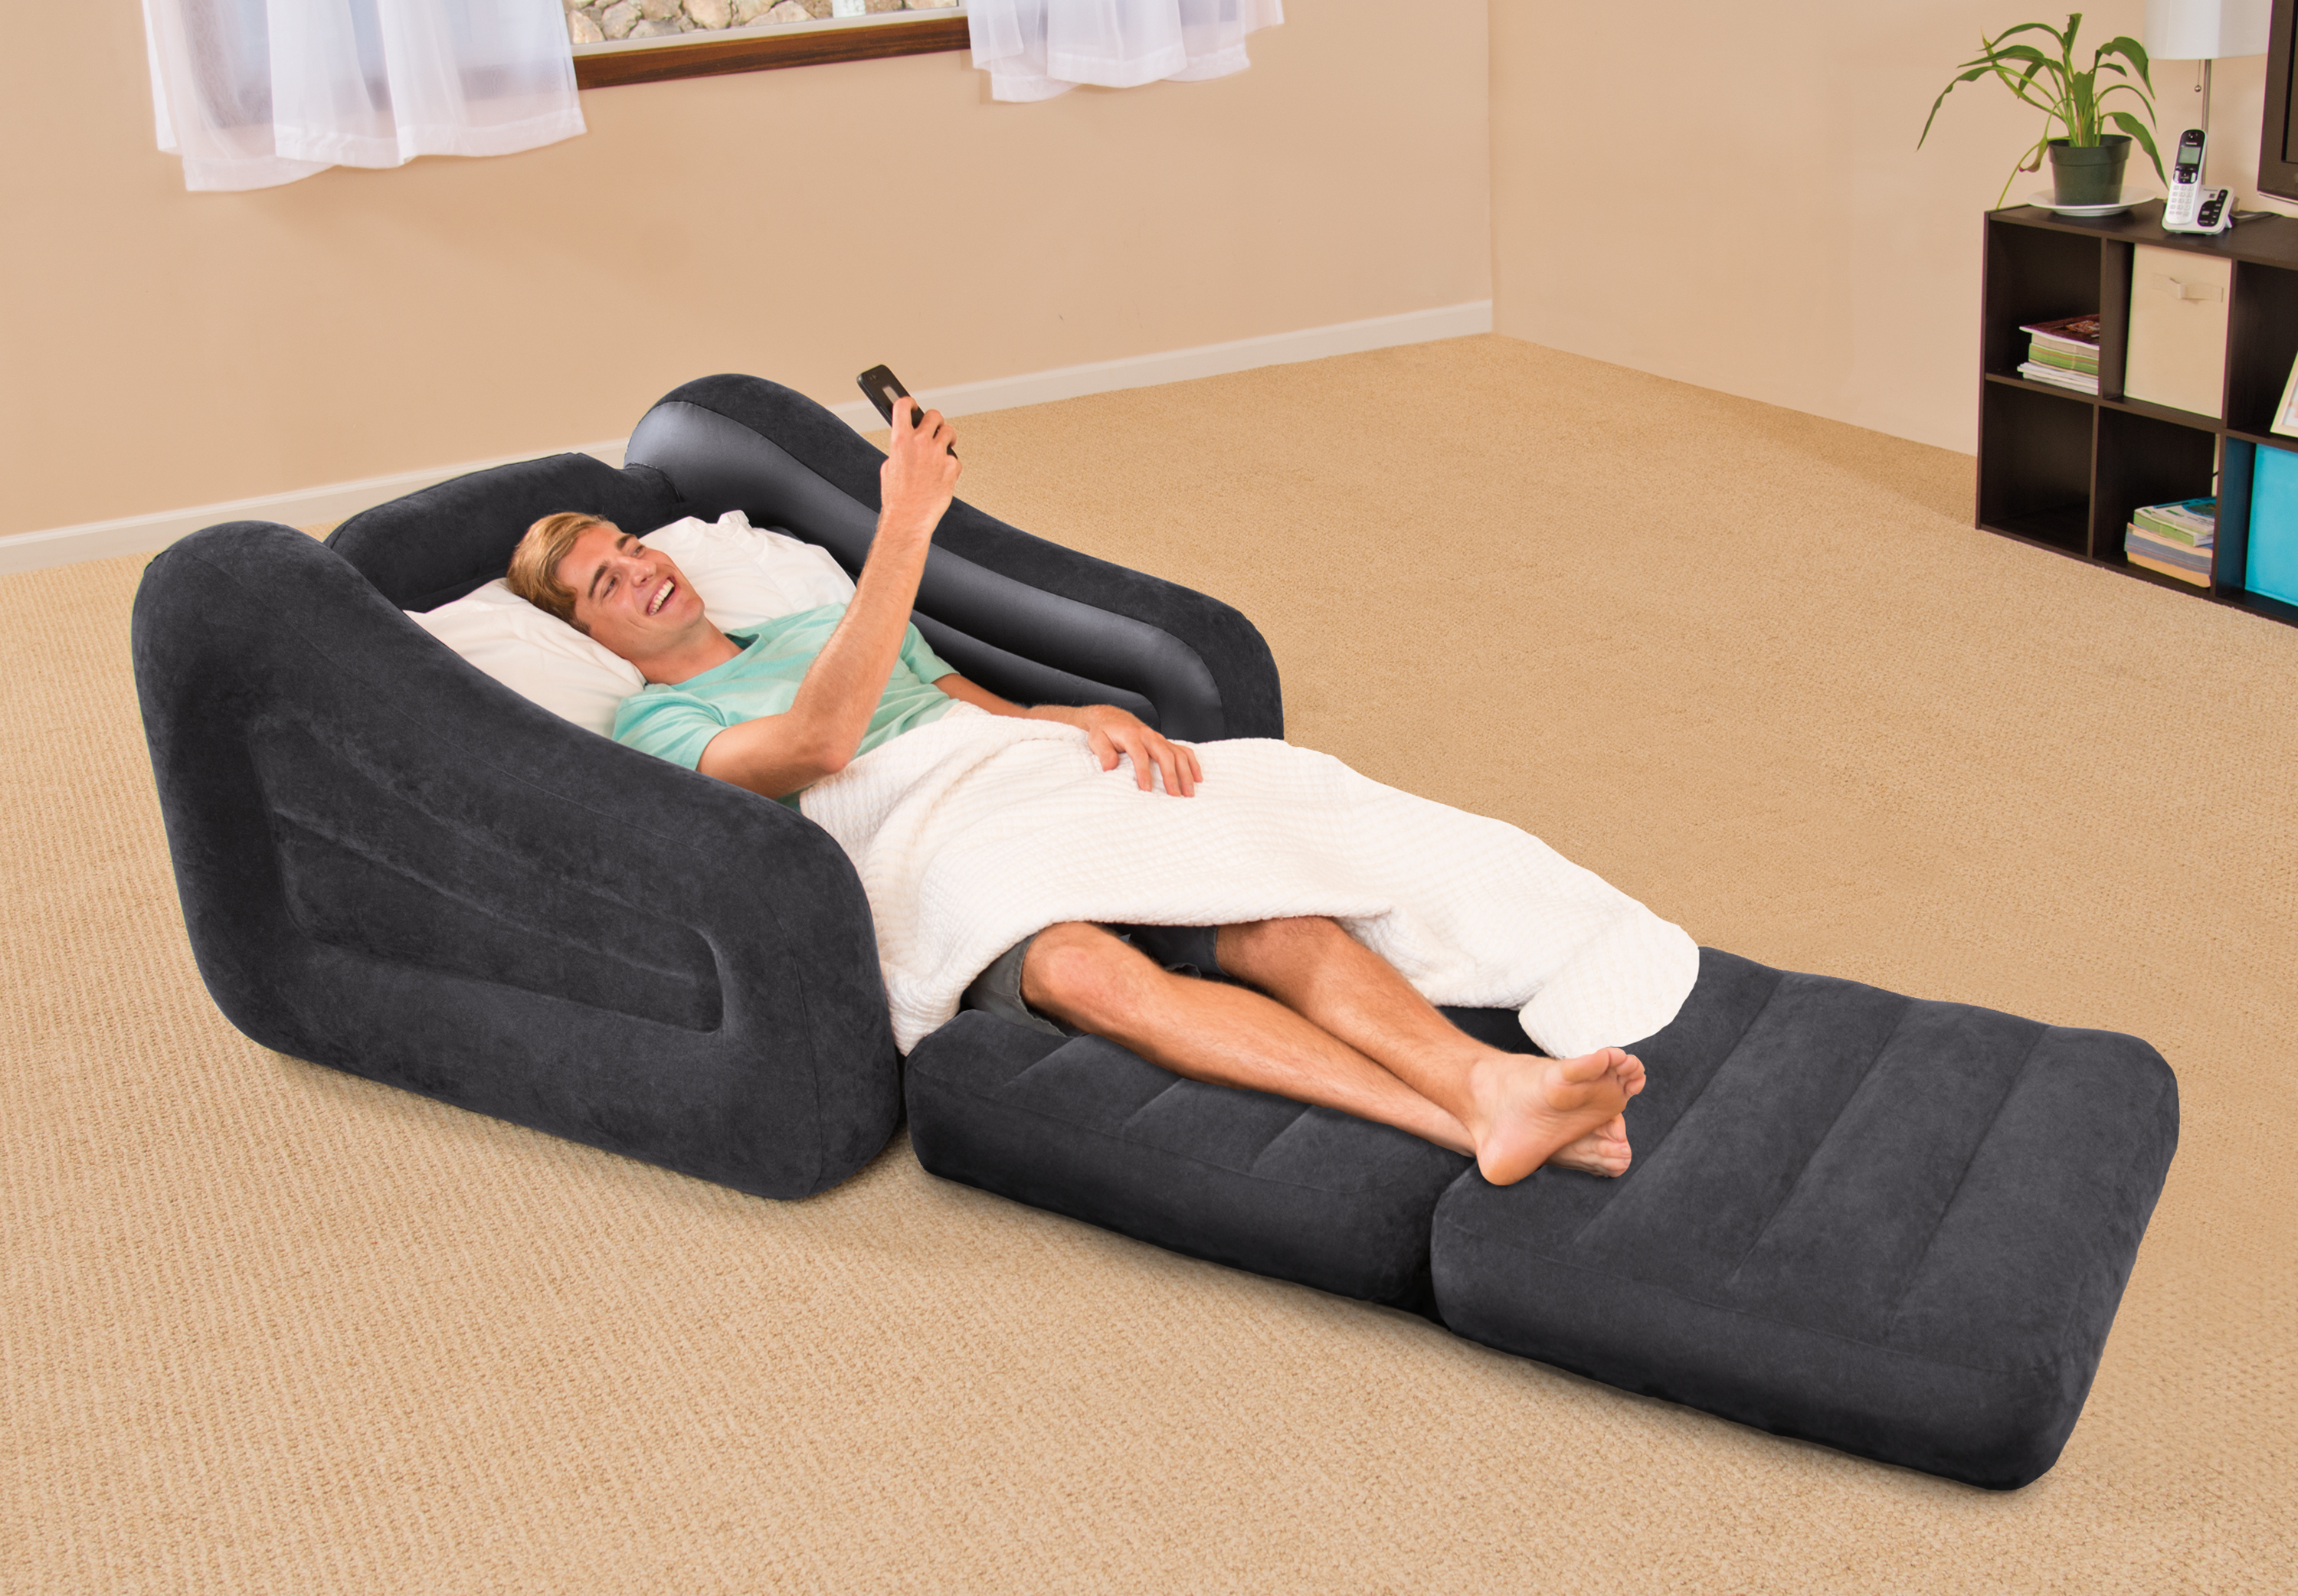 Intex Inflatable Air Chair with Pull Out Twin Bed Mattress Sleeper 68565E Black  eBay